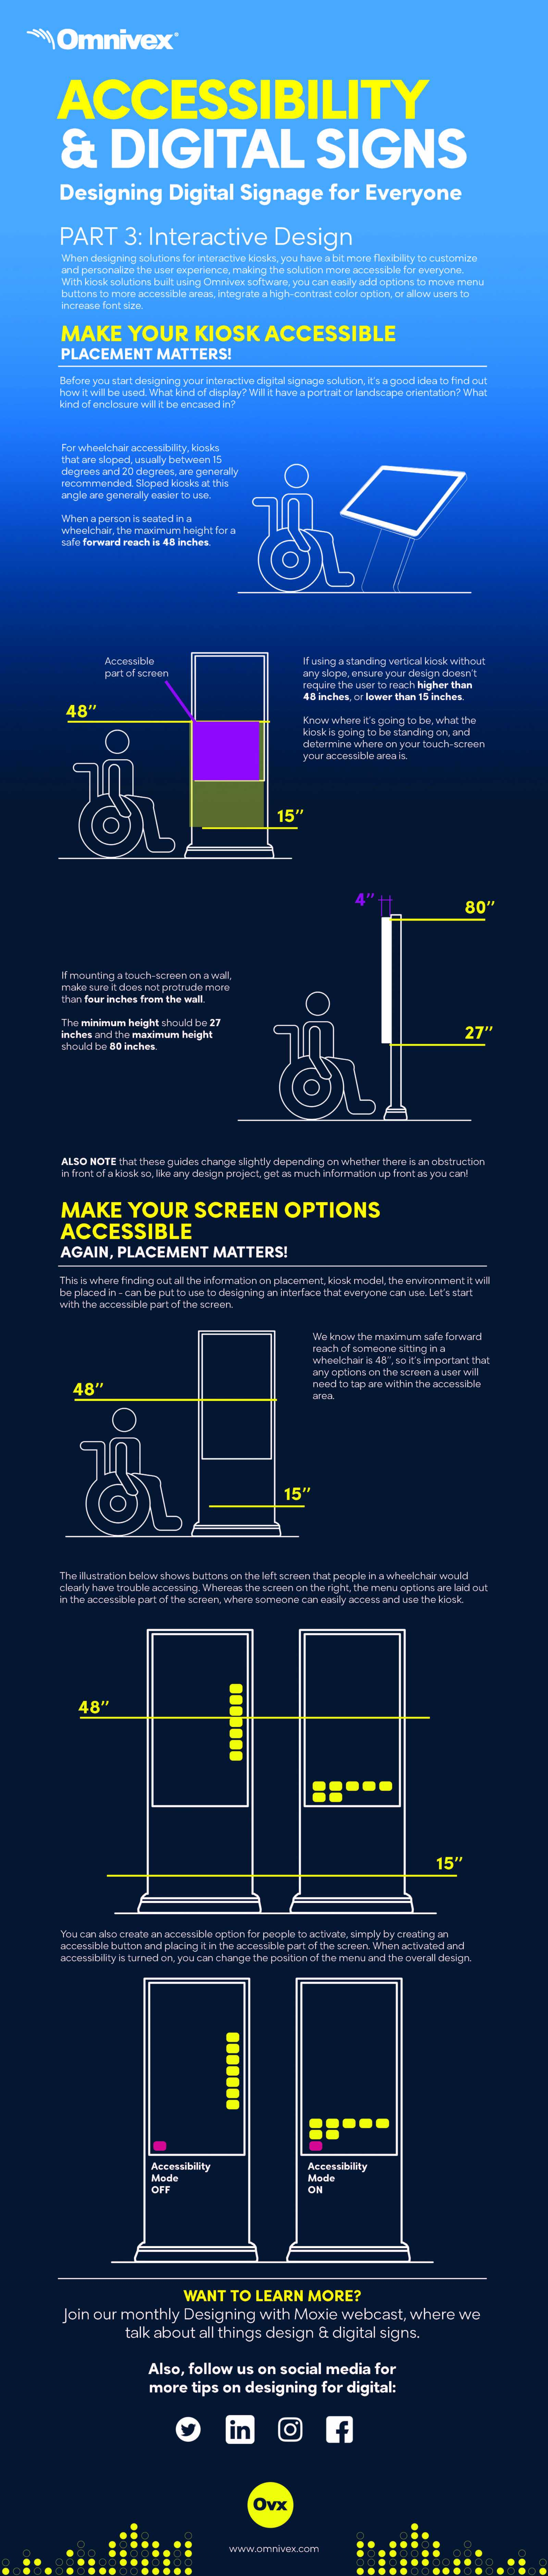 Accessibility - Interactive Design infographic